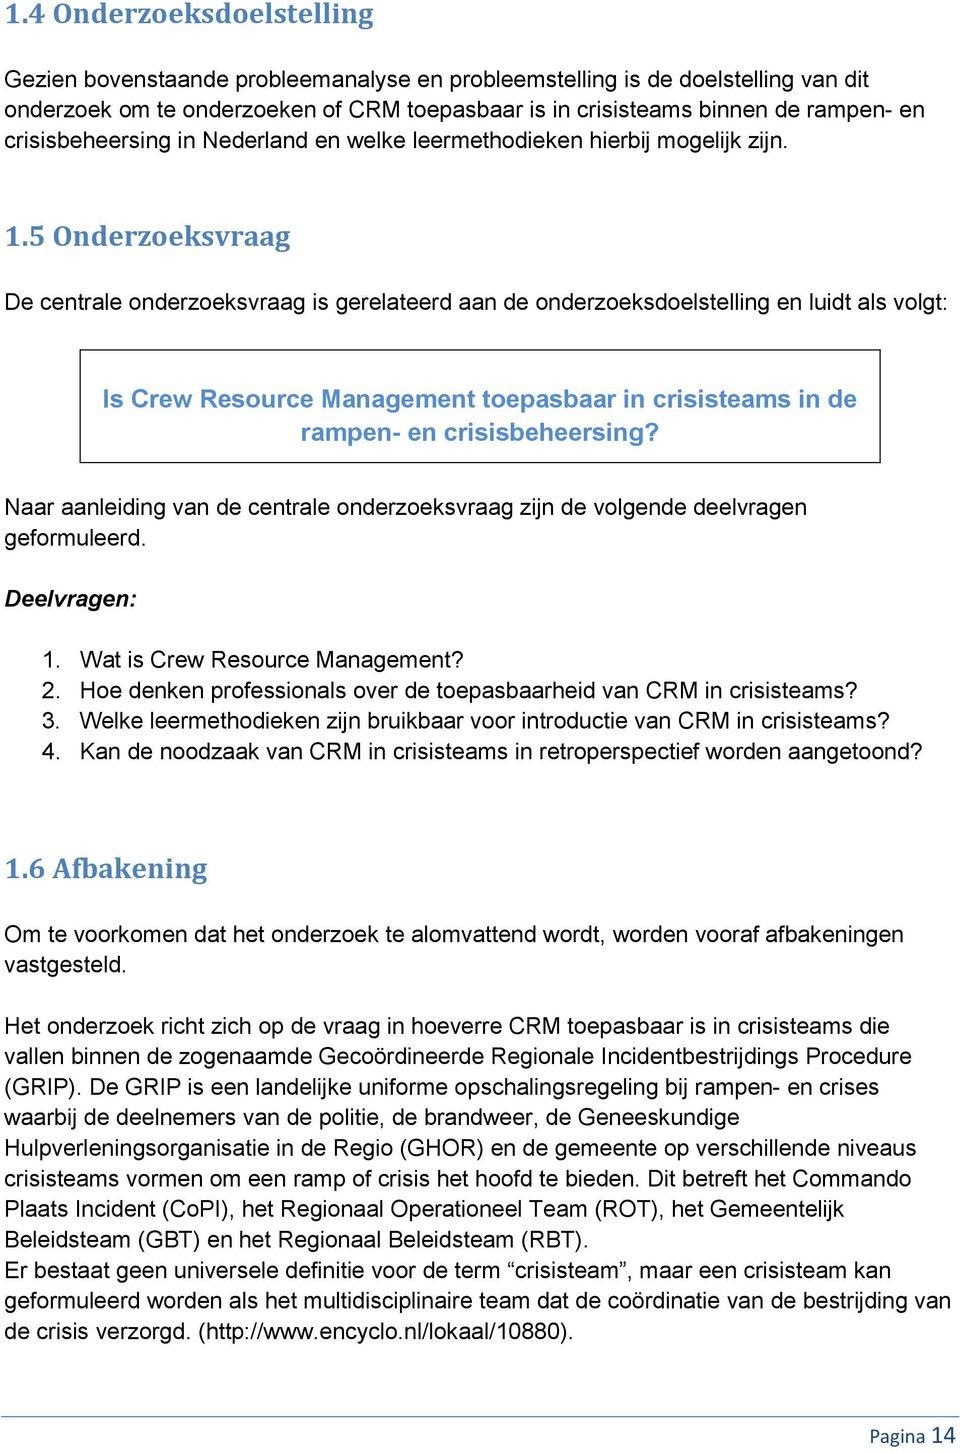 5 Onderzoeksvraag De centrale onderzoeksvraag is gerelateerd aan de onderzoeksdoelstelling en luidt als volgt: Is Crew Resource Management toepasbaar in crisisteams in de rampen- en crisisbeheersing?